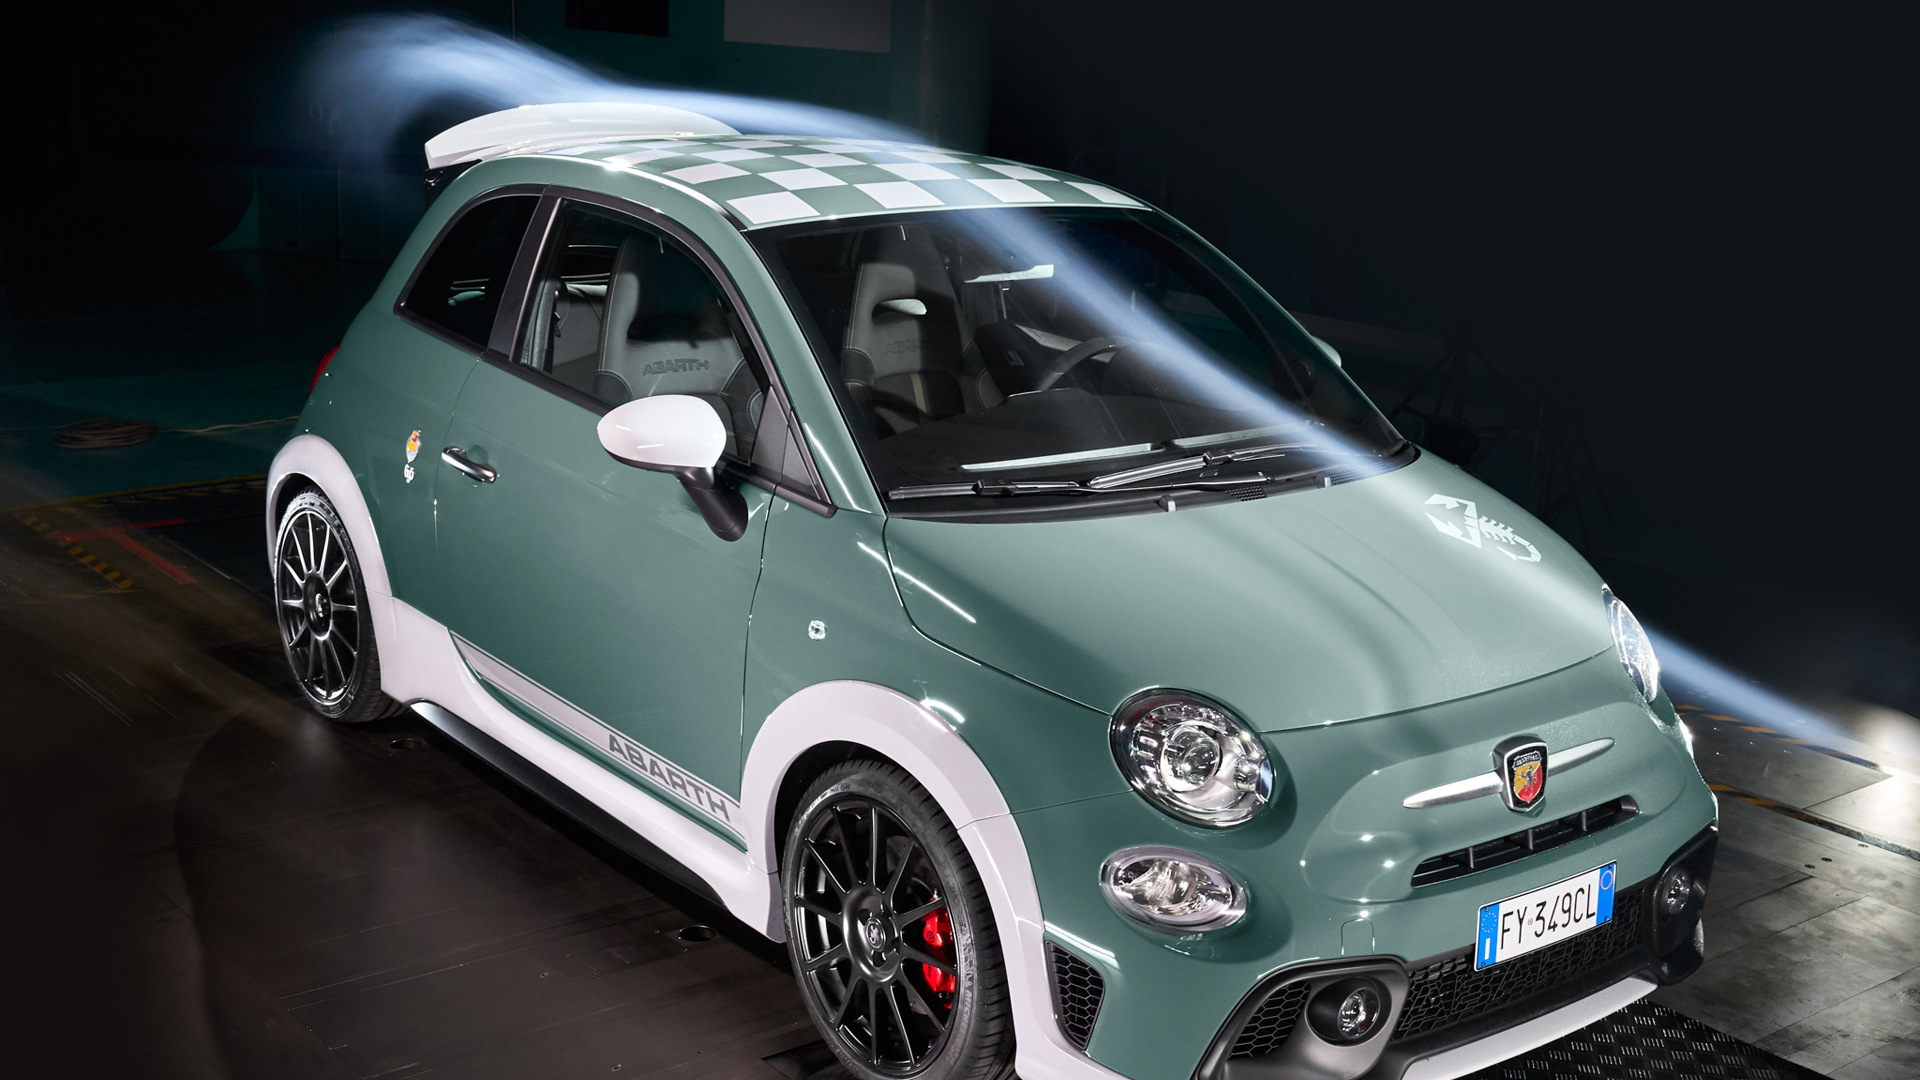 Fiat 500 Abarth 0 60 2020 Upcoming Car Release Date